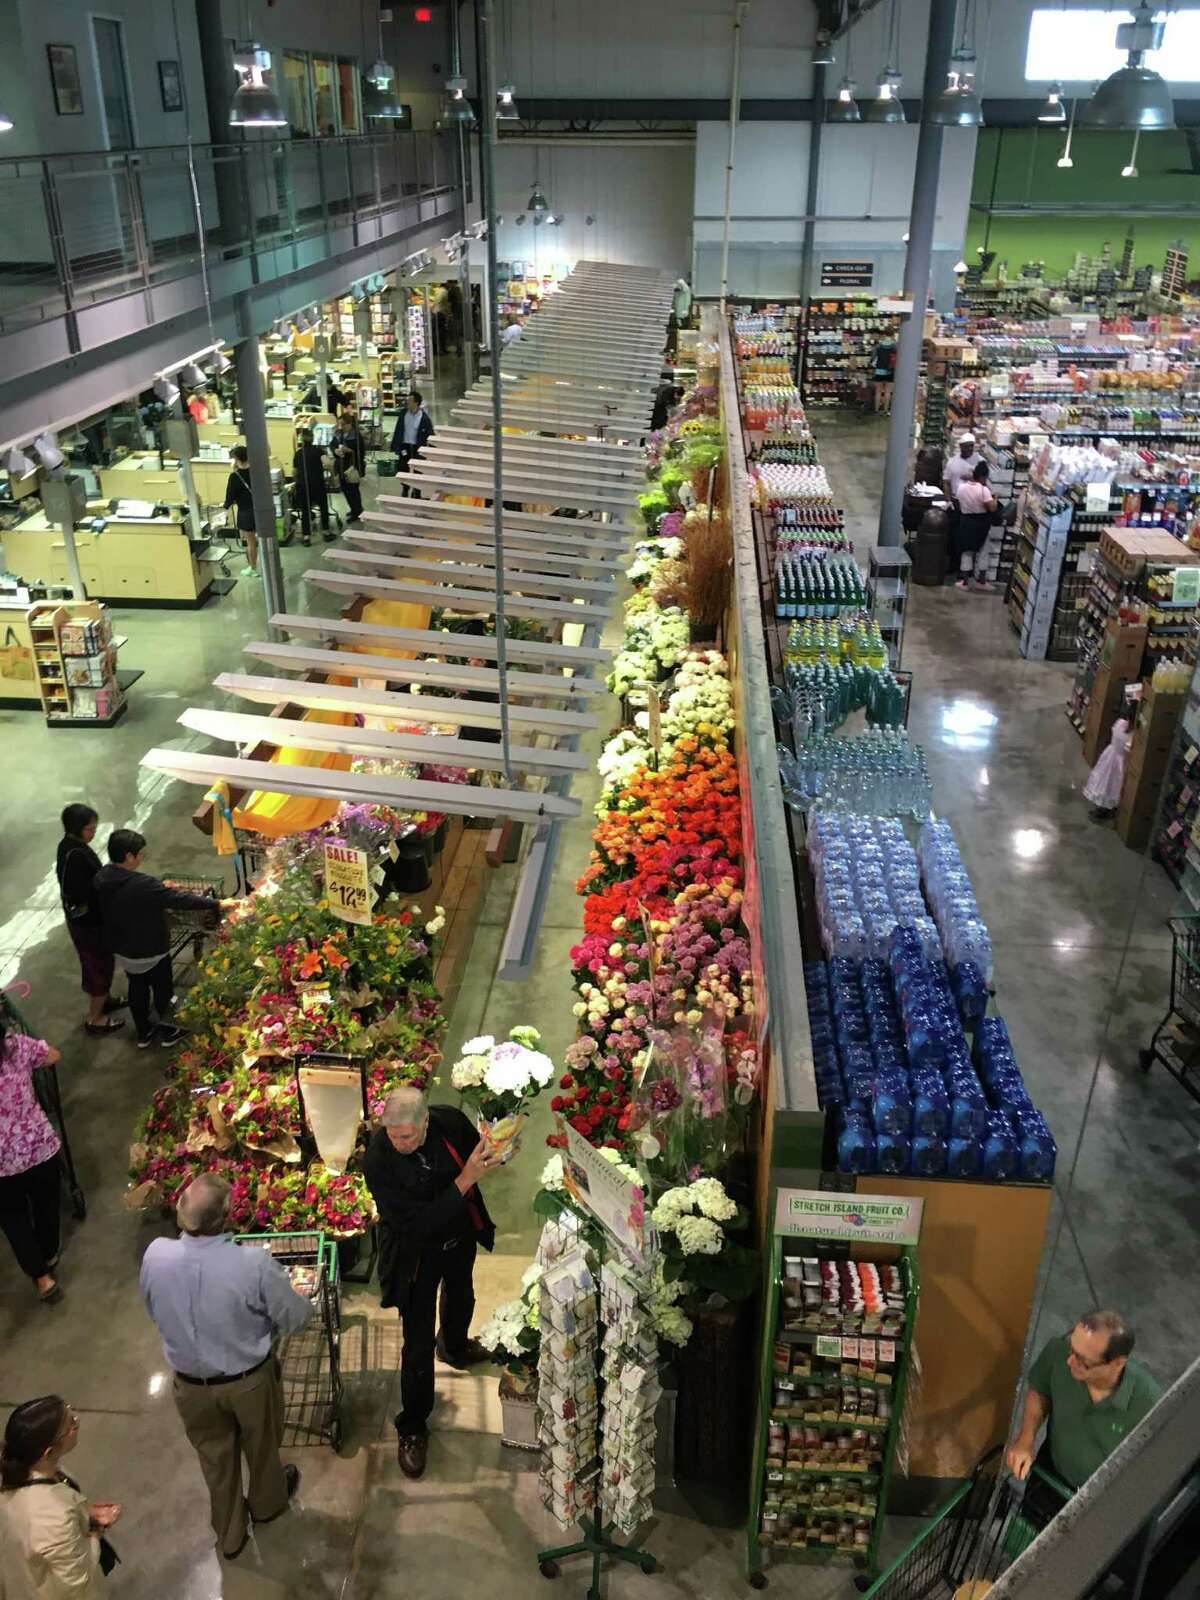 H-E-B's Stephen Butt says the Houston Central Market is one of the strongest of the nine in Texas.